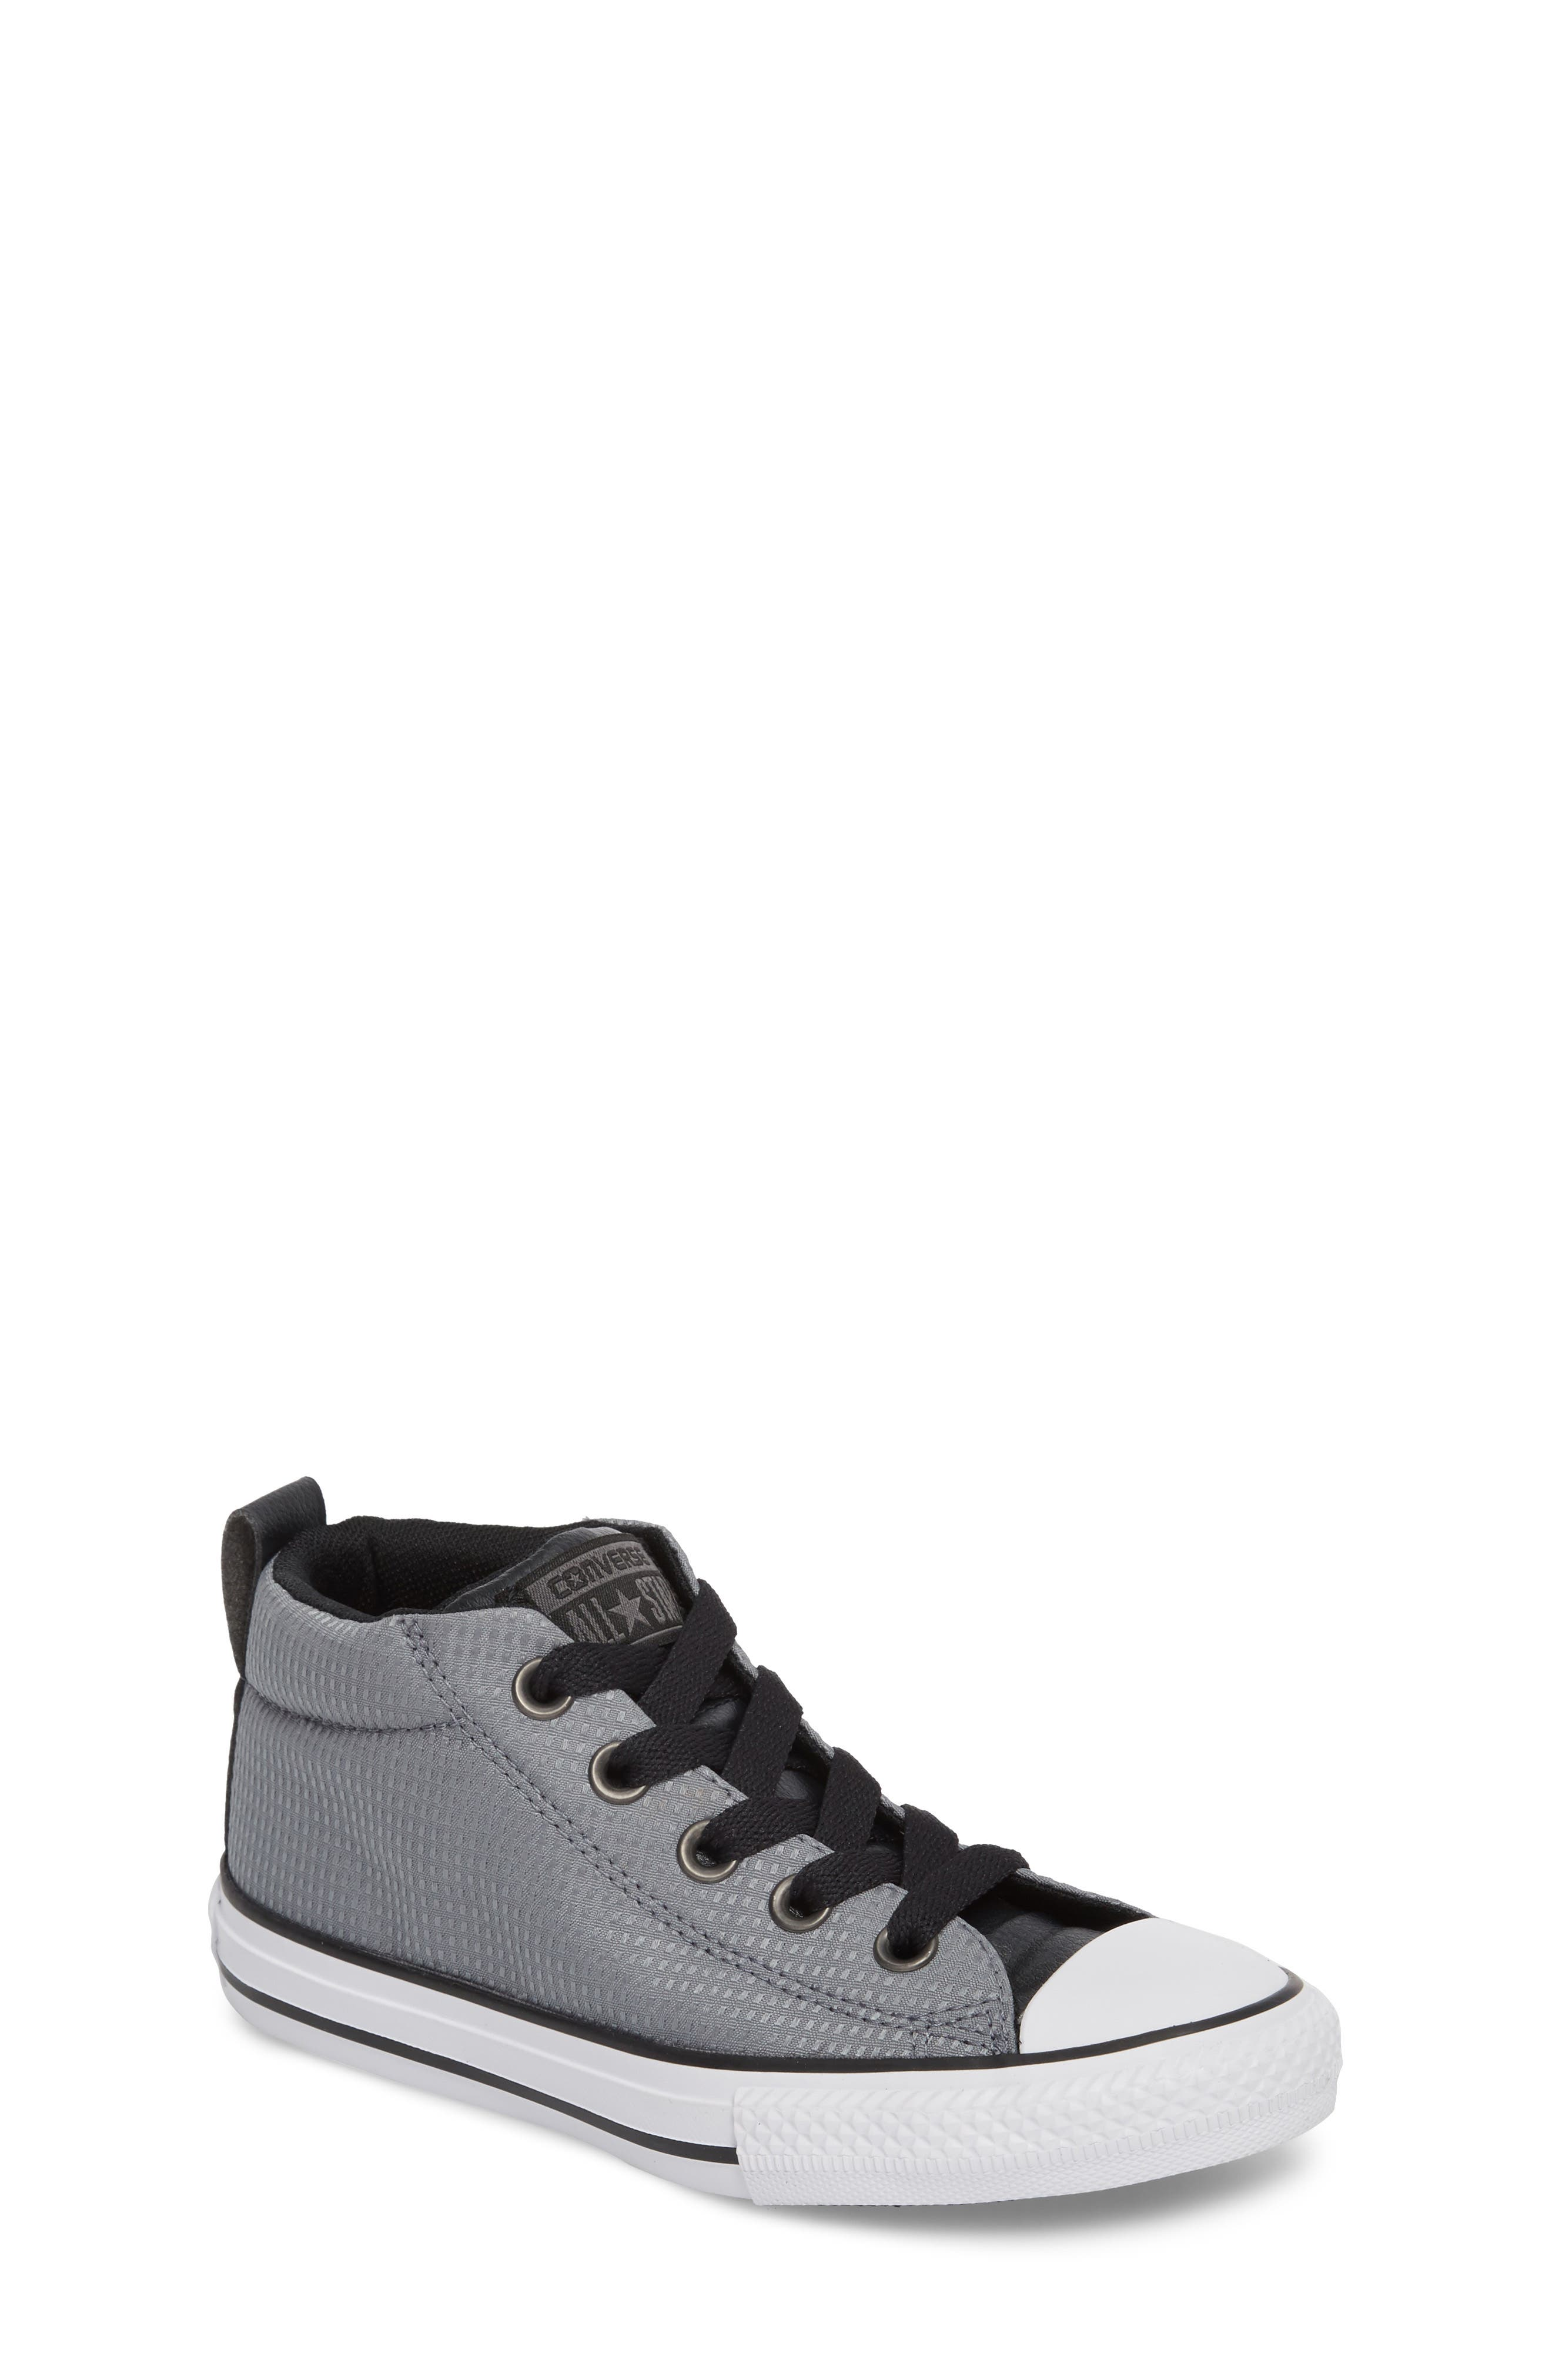 Chuck Taylor<sup>®</sup> All Star<sup>®</sup> Street Mid Backpack Sneaker,                             Main thumbnail 1, color,                             Cool Grey